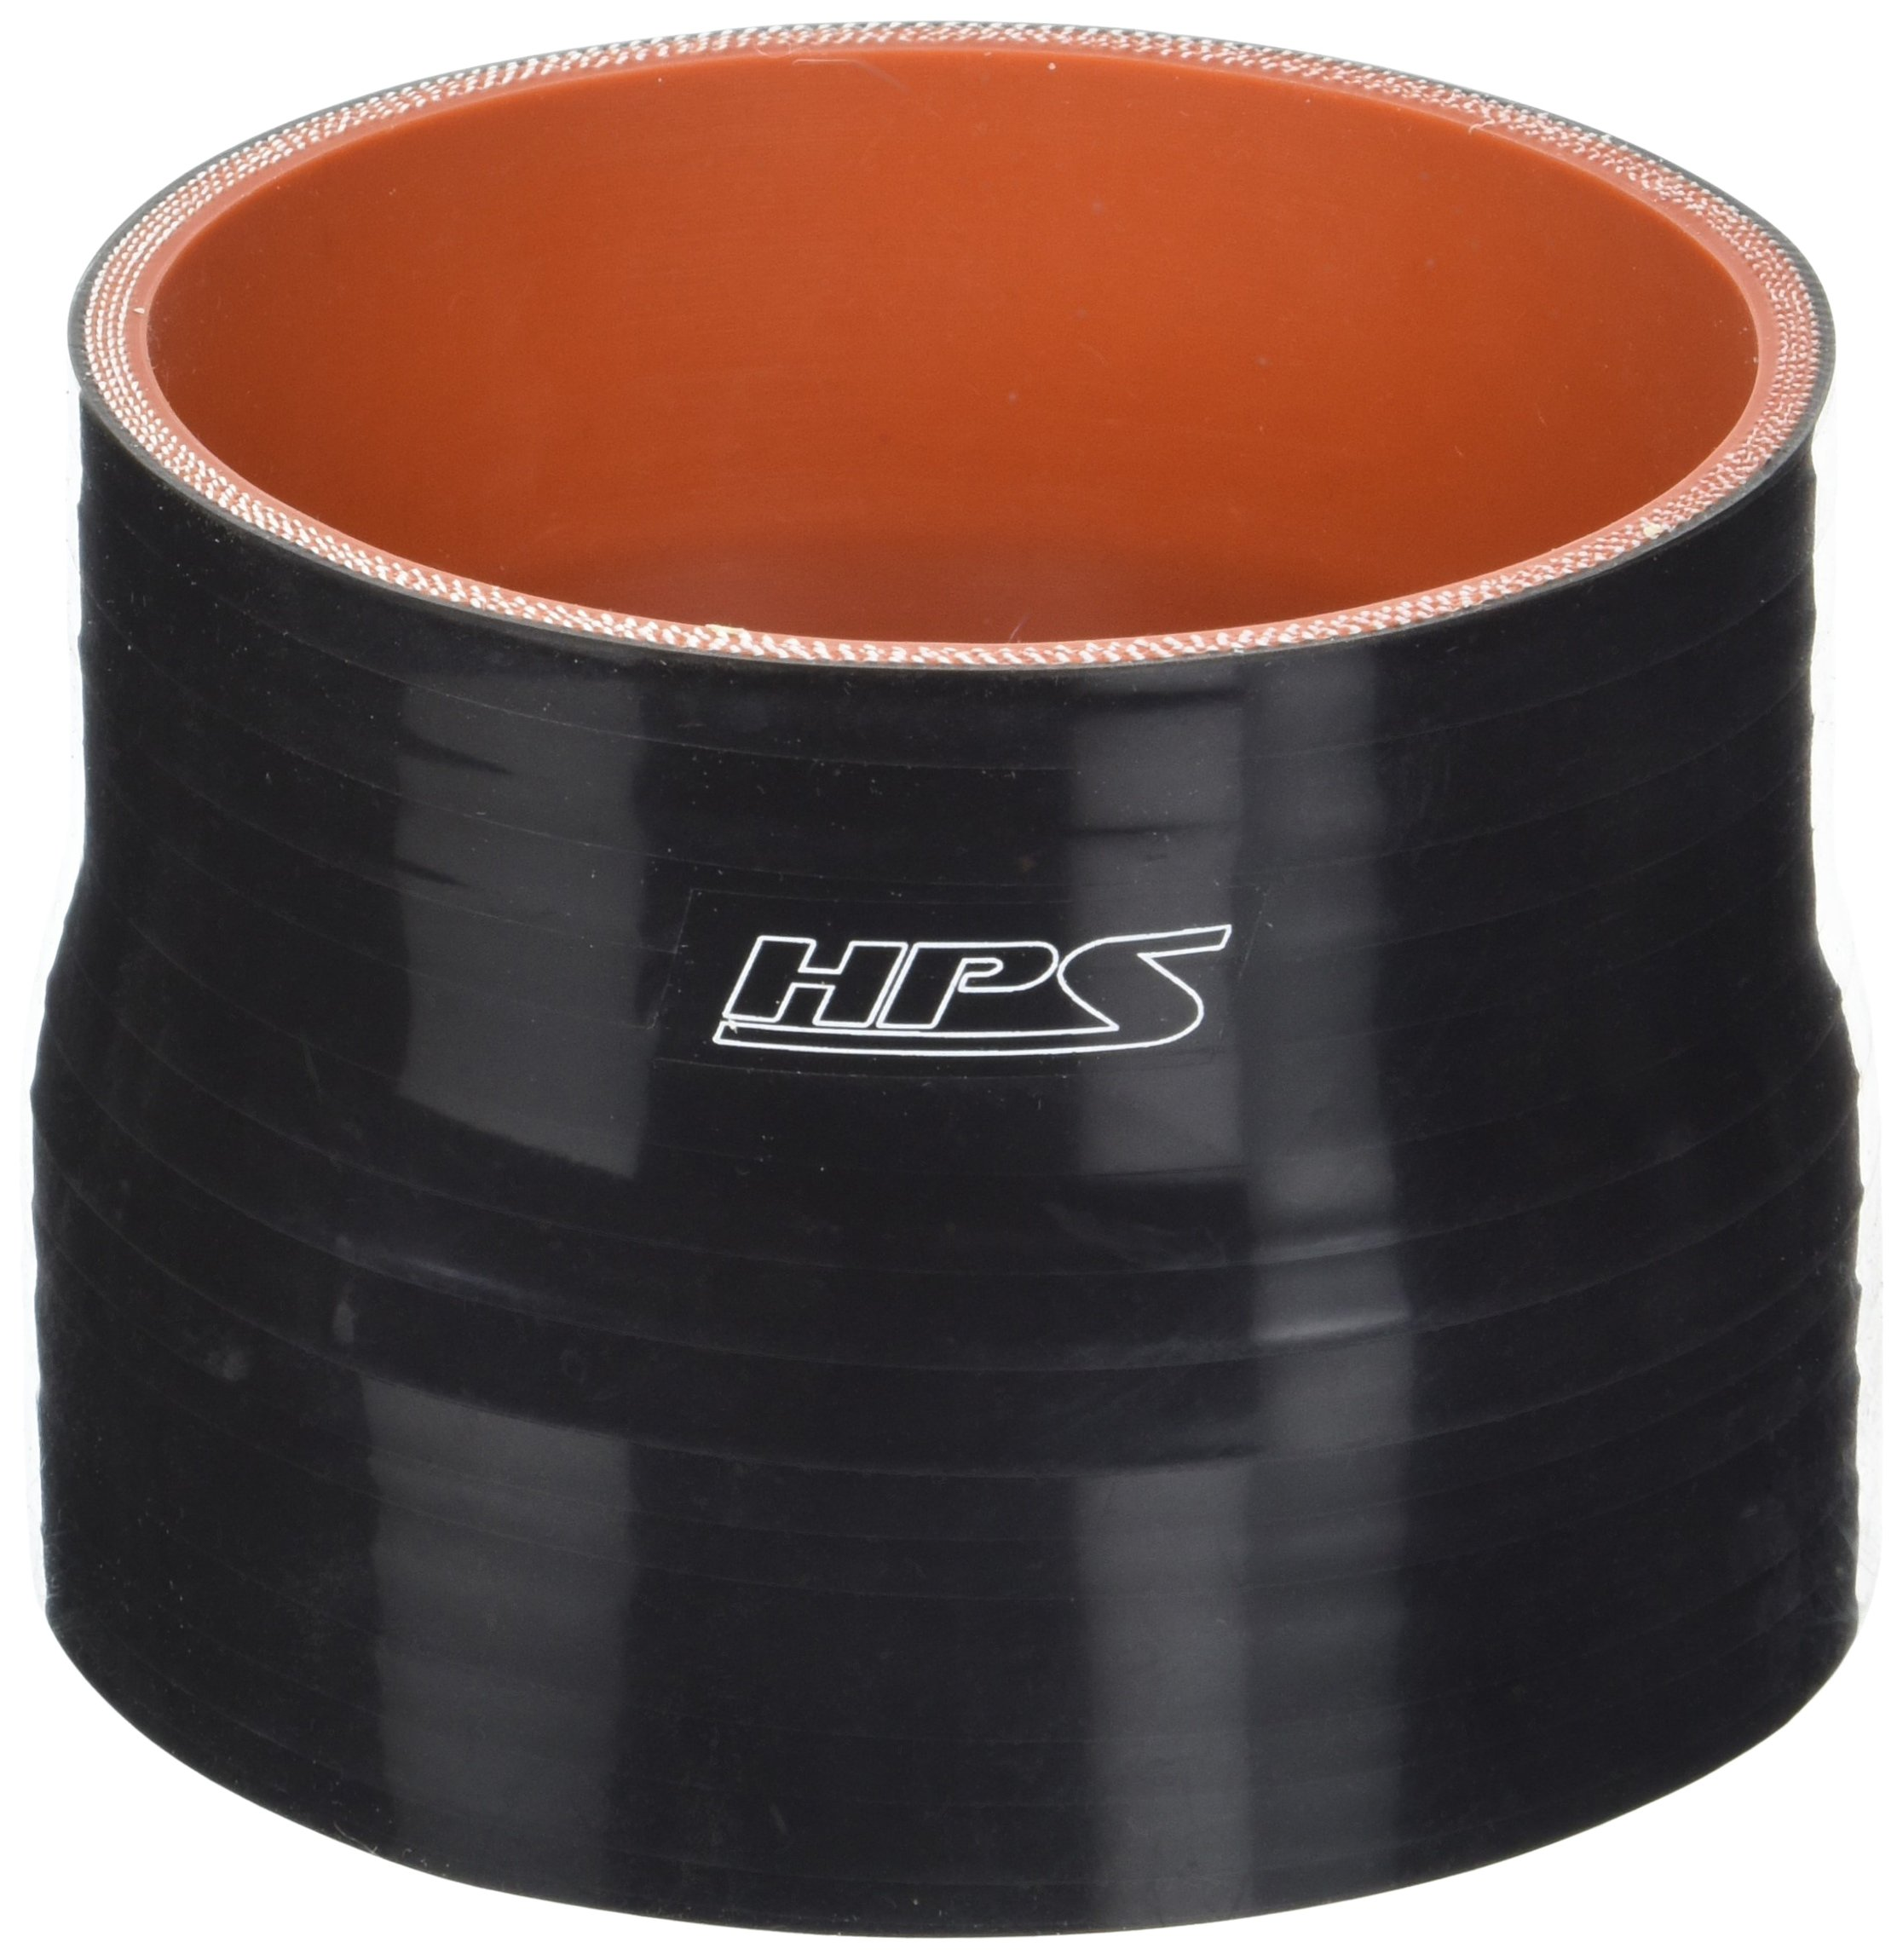 HPS HTSR-375-400-BLK Silicone High Temperature 4-ply Reinforced Reducer Coupler Hose, 40 PSI Maximum Pressure, 3'' Length, 3-3/4'' > 4'' ID, Black